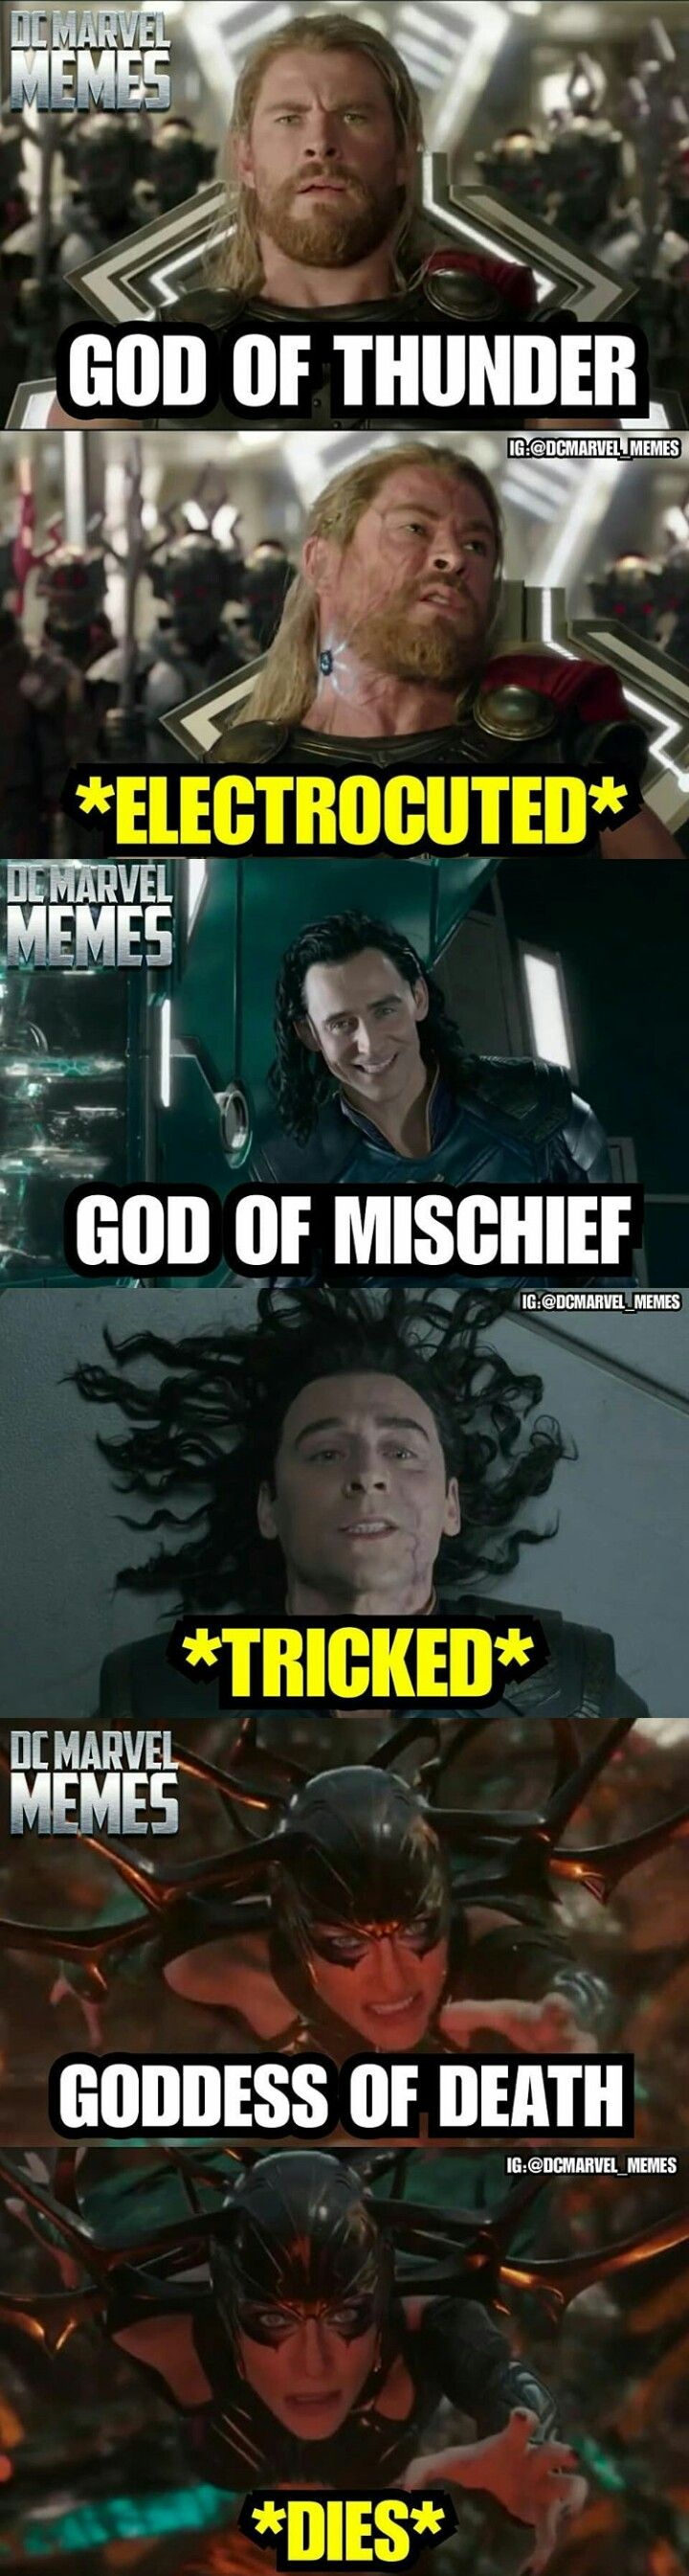 All I can think about is the hair and make up team taking like 20 minutes to spread Loki's hair out juuuust right.